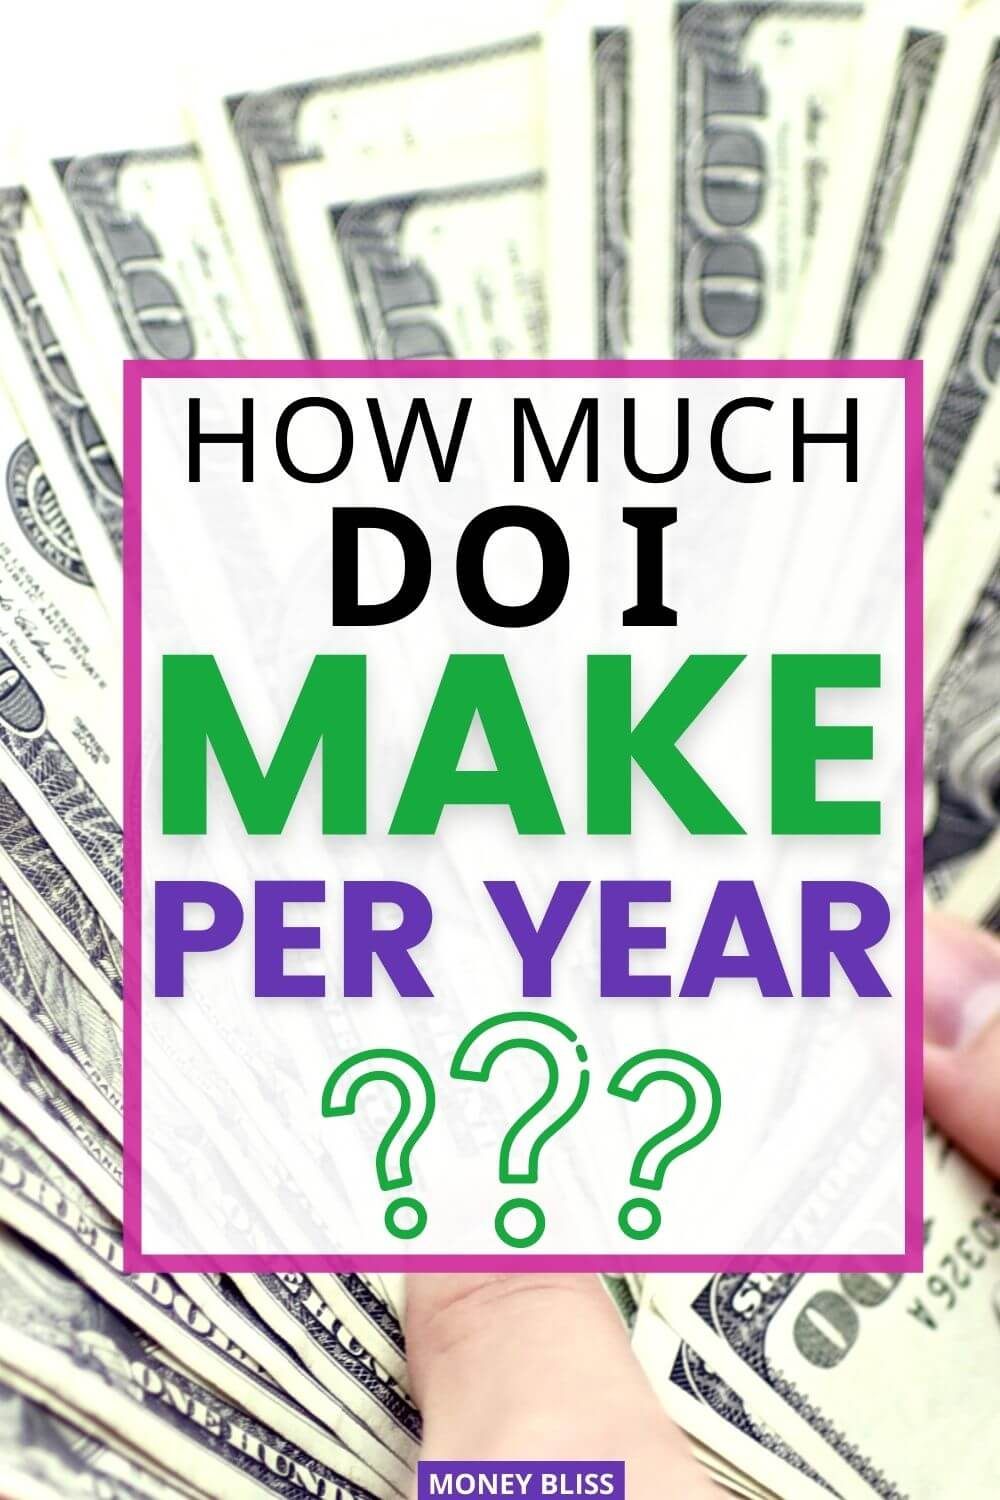 How do I calculate how much I earn a year? Learn how much do I make a year based on your hourly wage or your annual salary. Use our calculators to help you quickly your salary to hourly calculator.